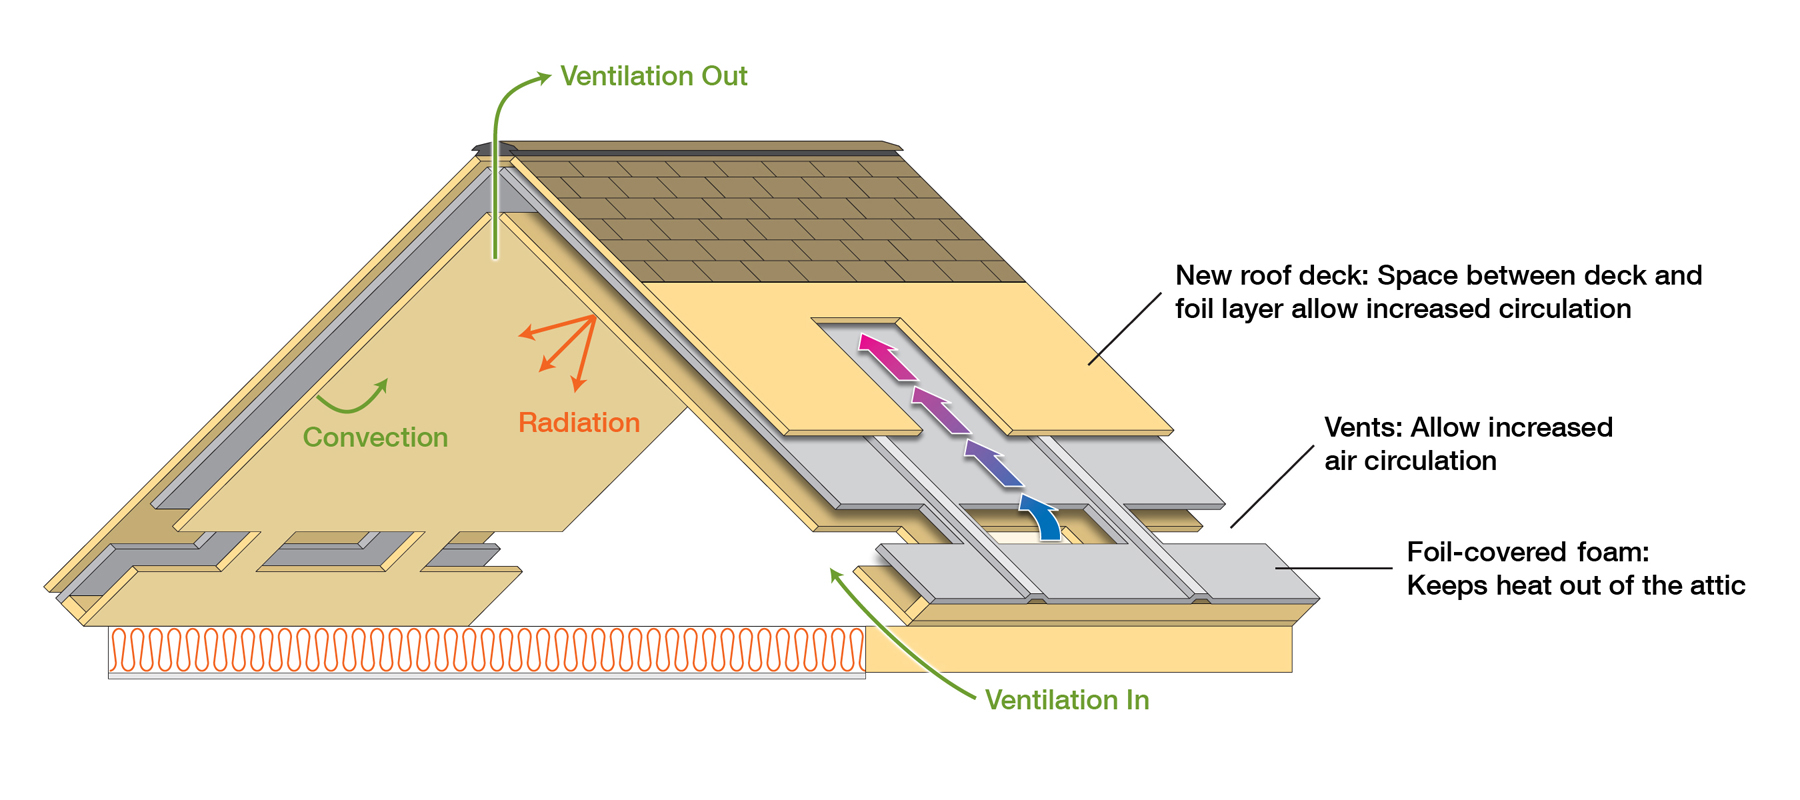 Roof Ventilation To Prevent Condensation And Moisture Behind Walls In Cold Climates When The Air Inside Is Warm And Laden Wi Attic Design Roofing Roof Design